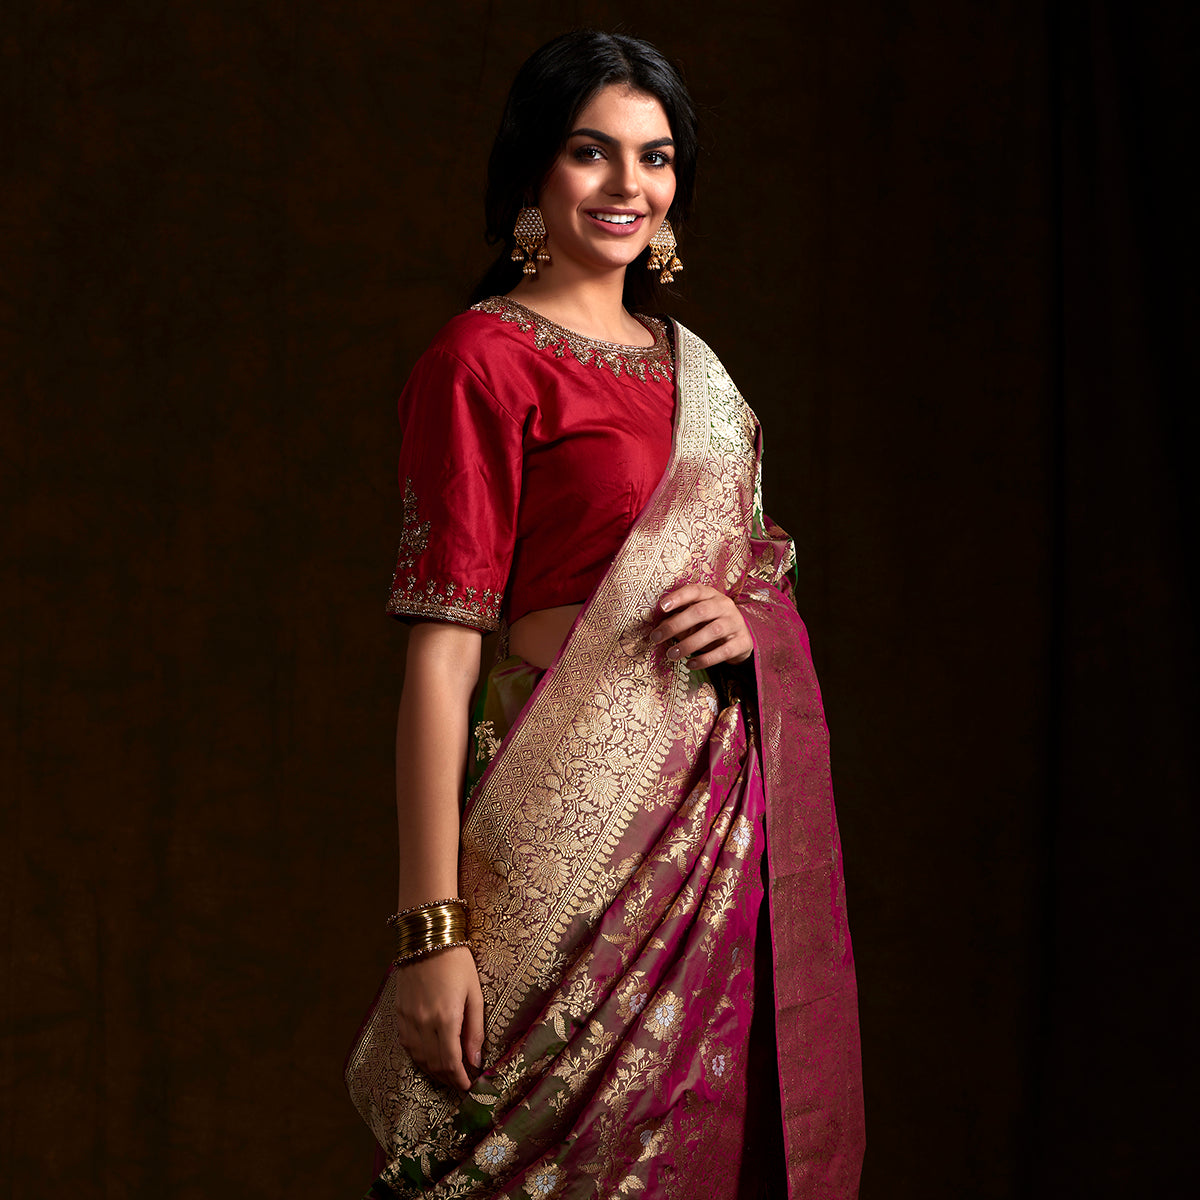 Purple and green dual tone sona rupa kadhwa saree with a floral jaal